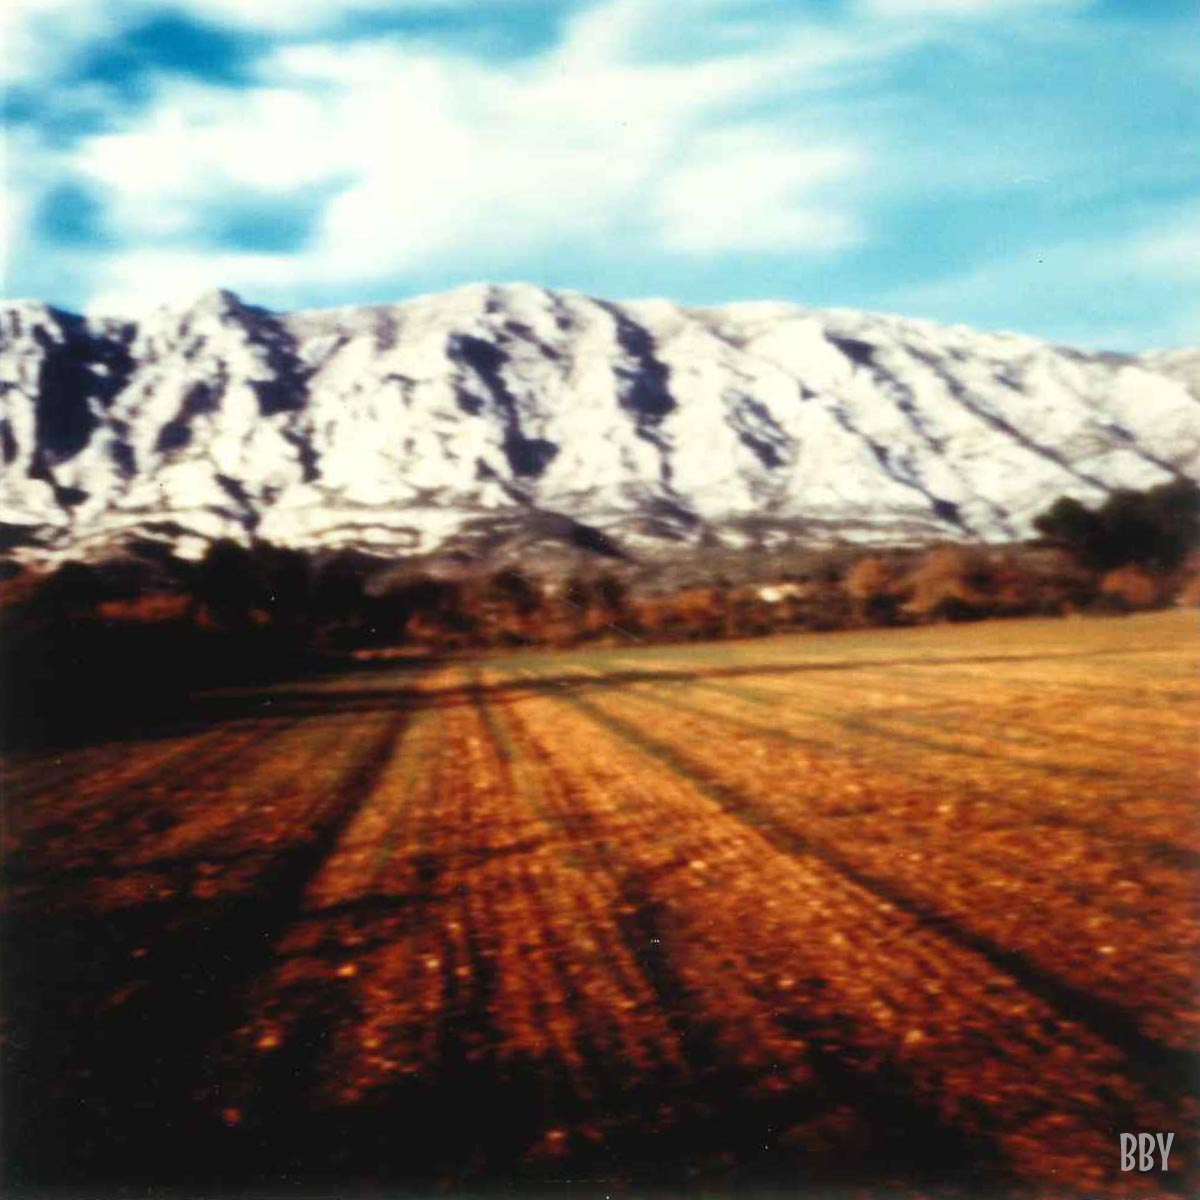 stenope, pinhole, slow photography, chambre noire, champ, aix-en-provence, massif, cliff